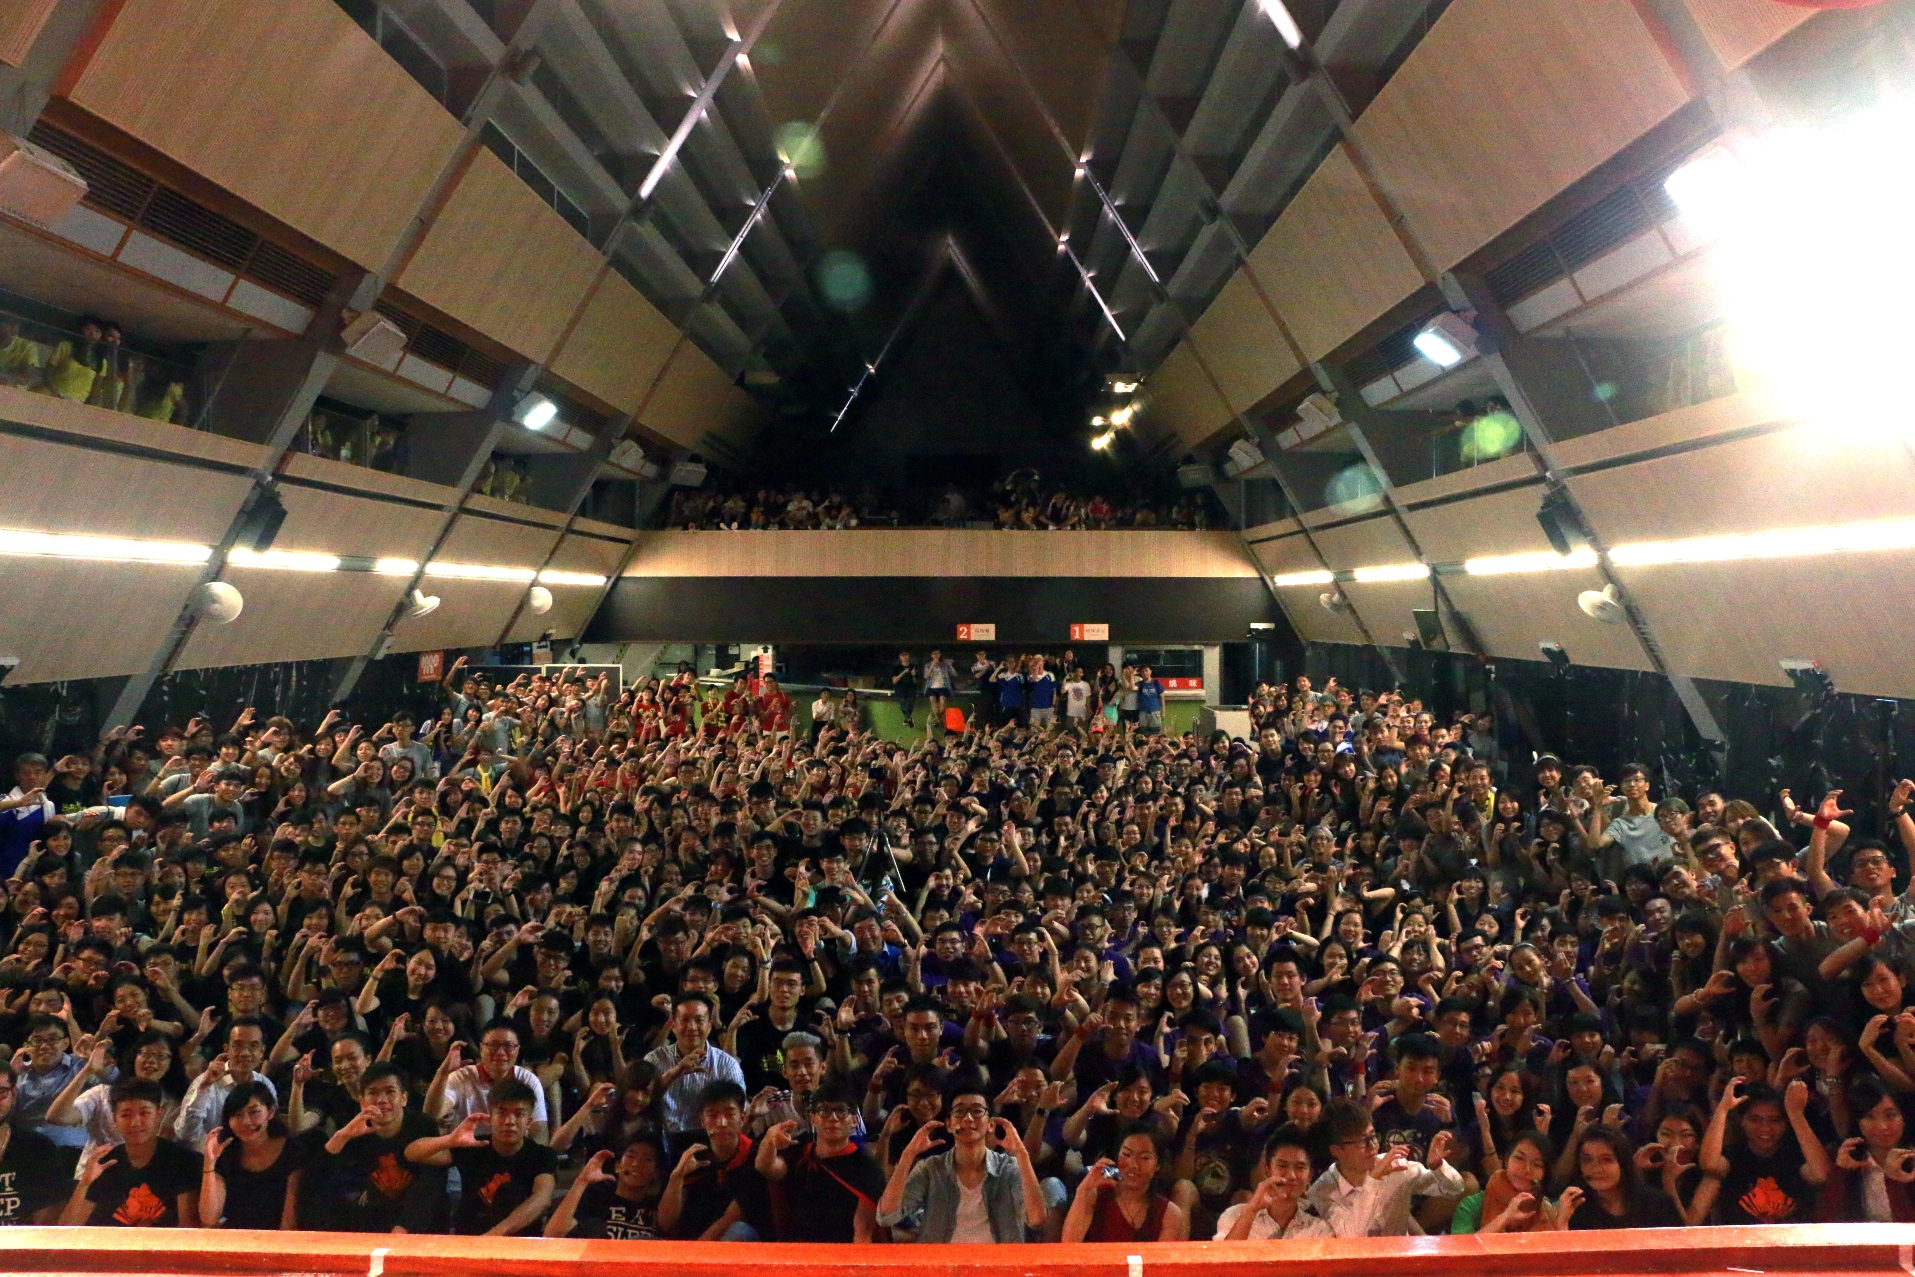 About 300 freshmen and members of Chung Chi College take part in the Orientation Night.